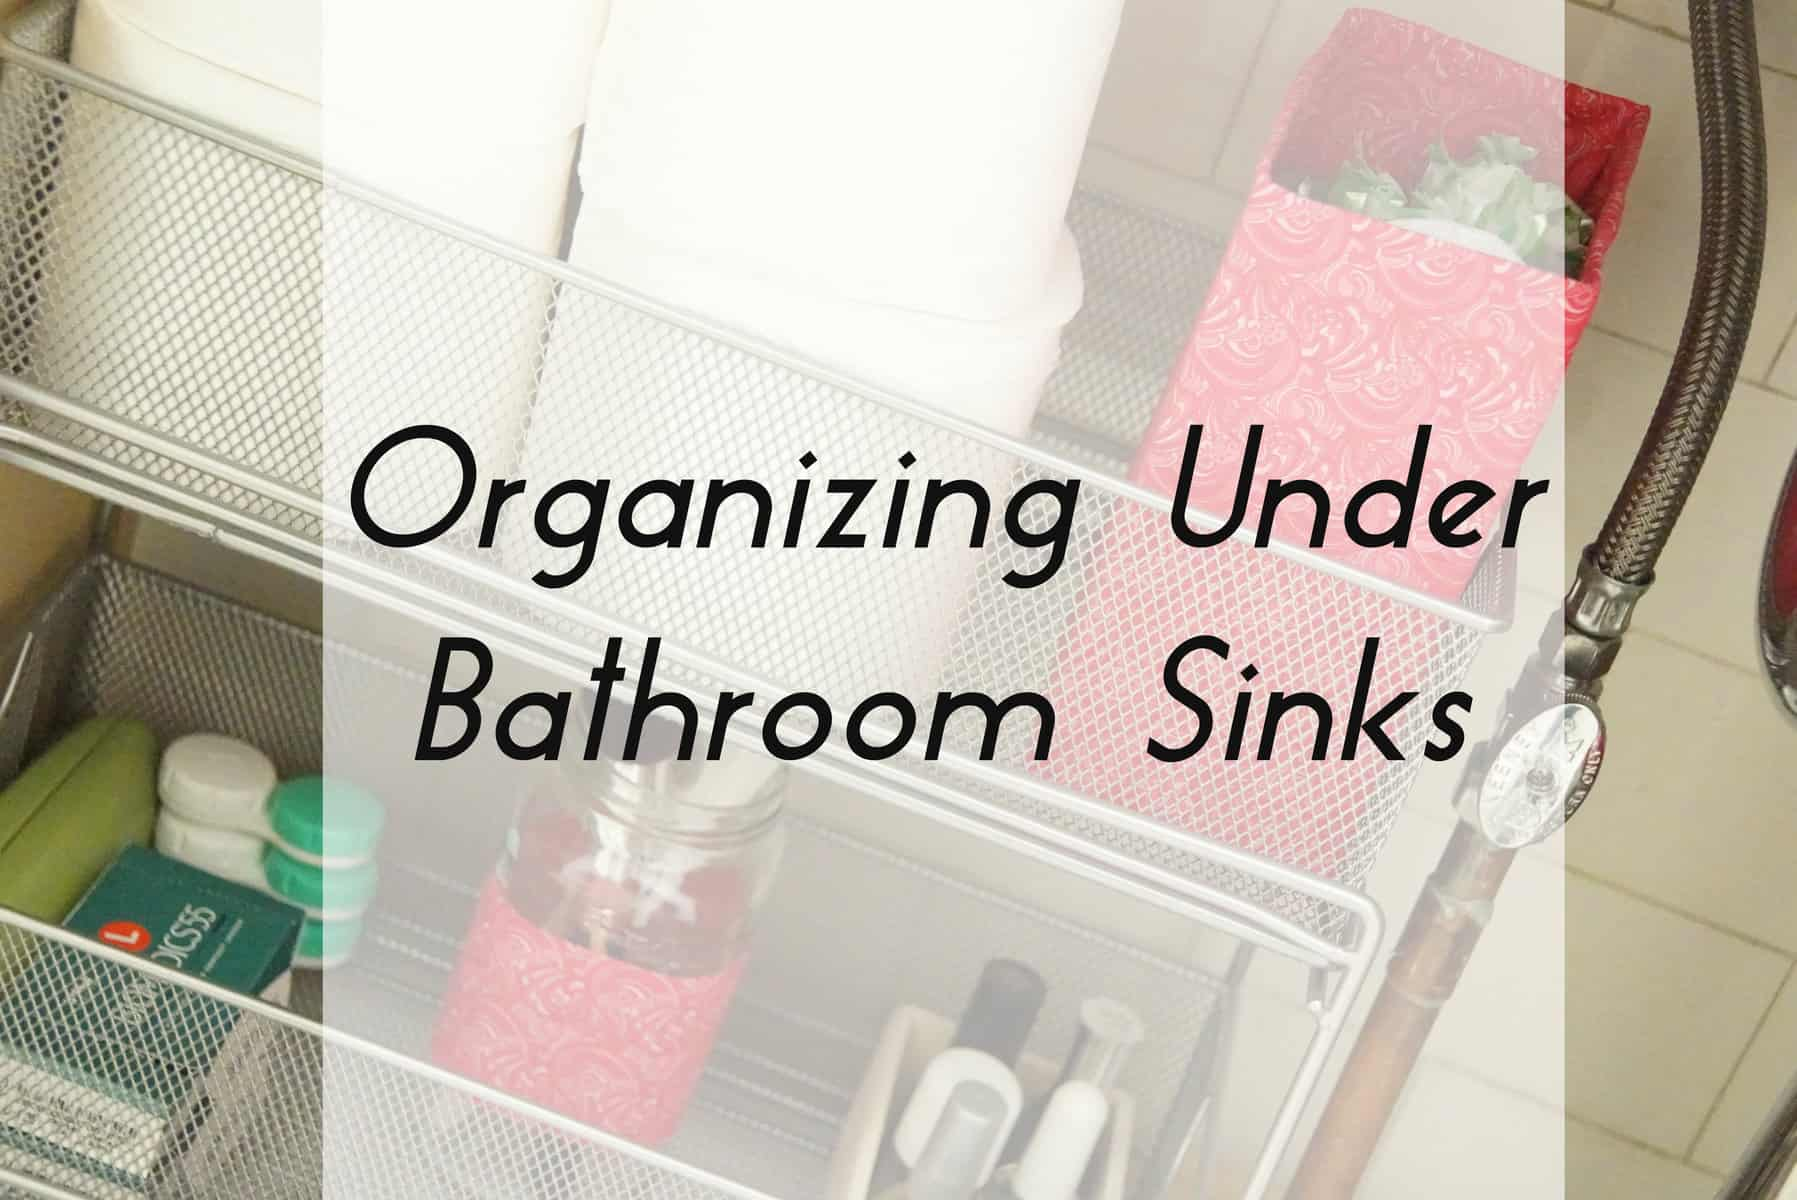 Organizing Under Bathroom Sinks Heartwork Organizing